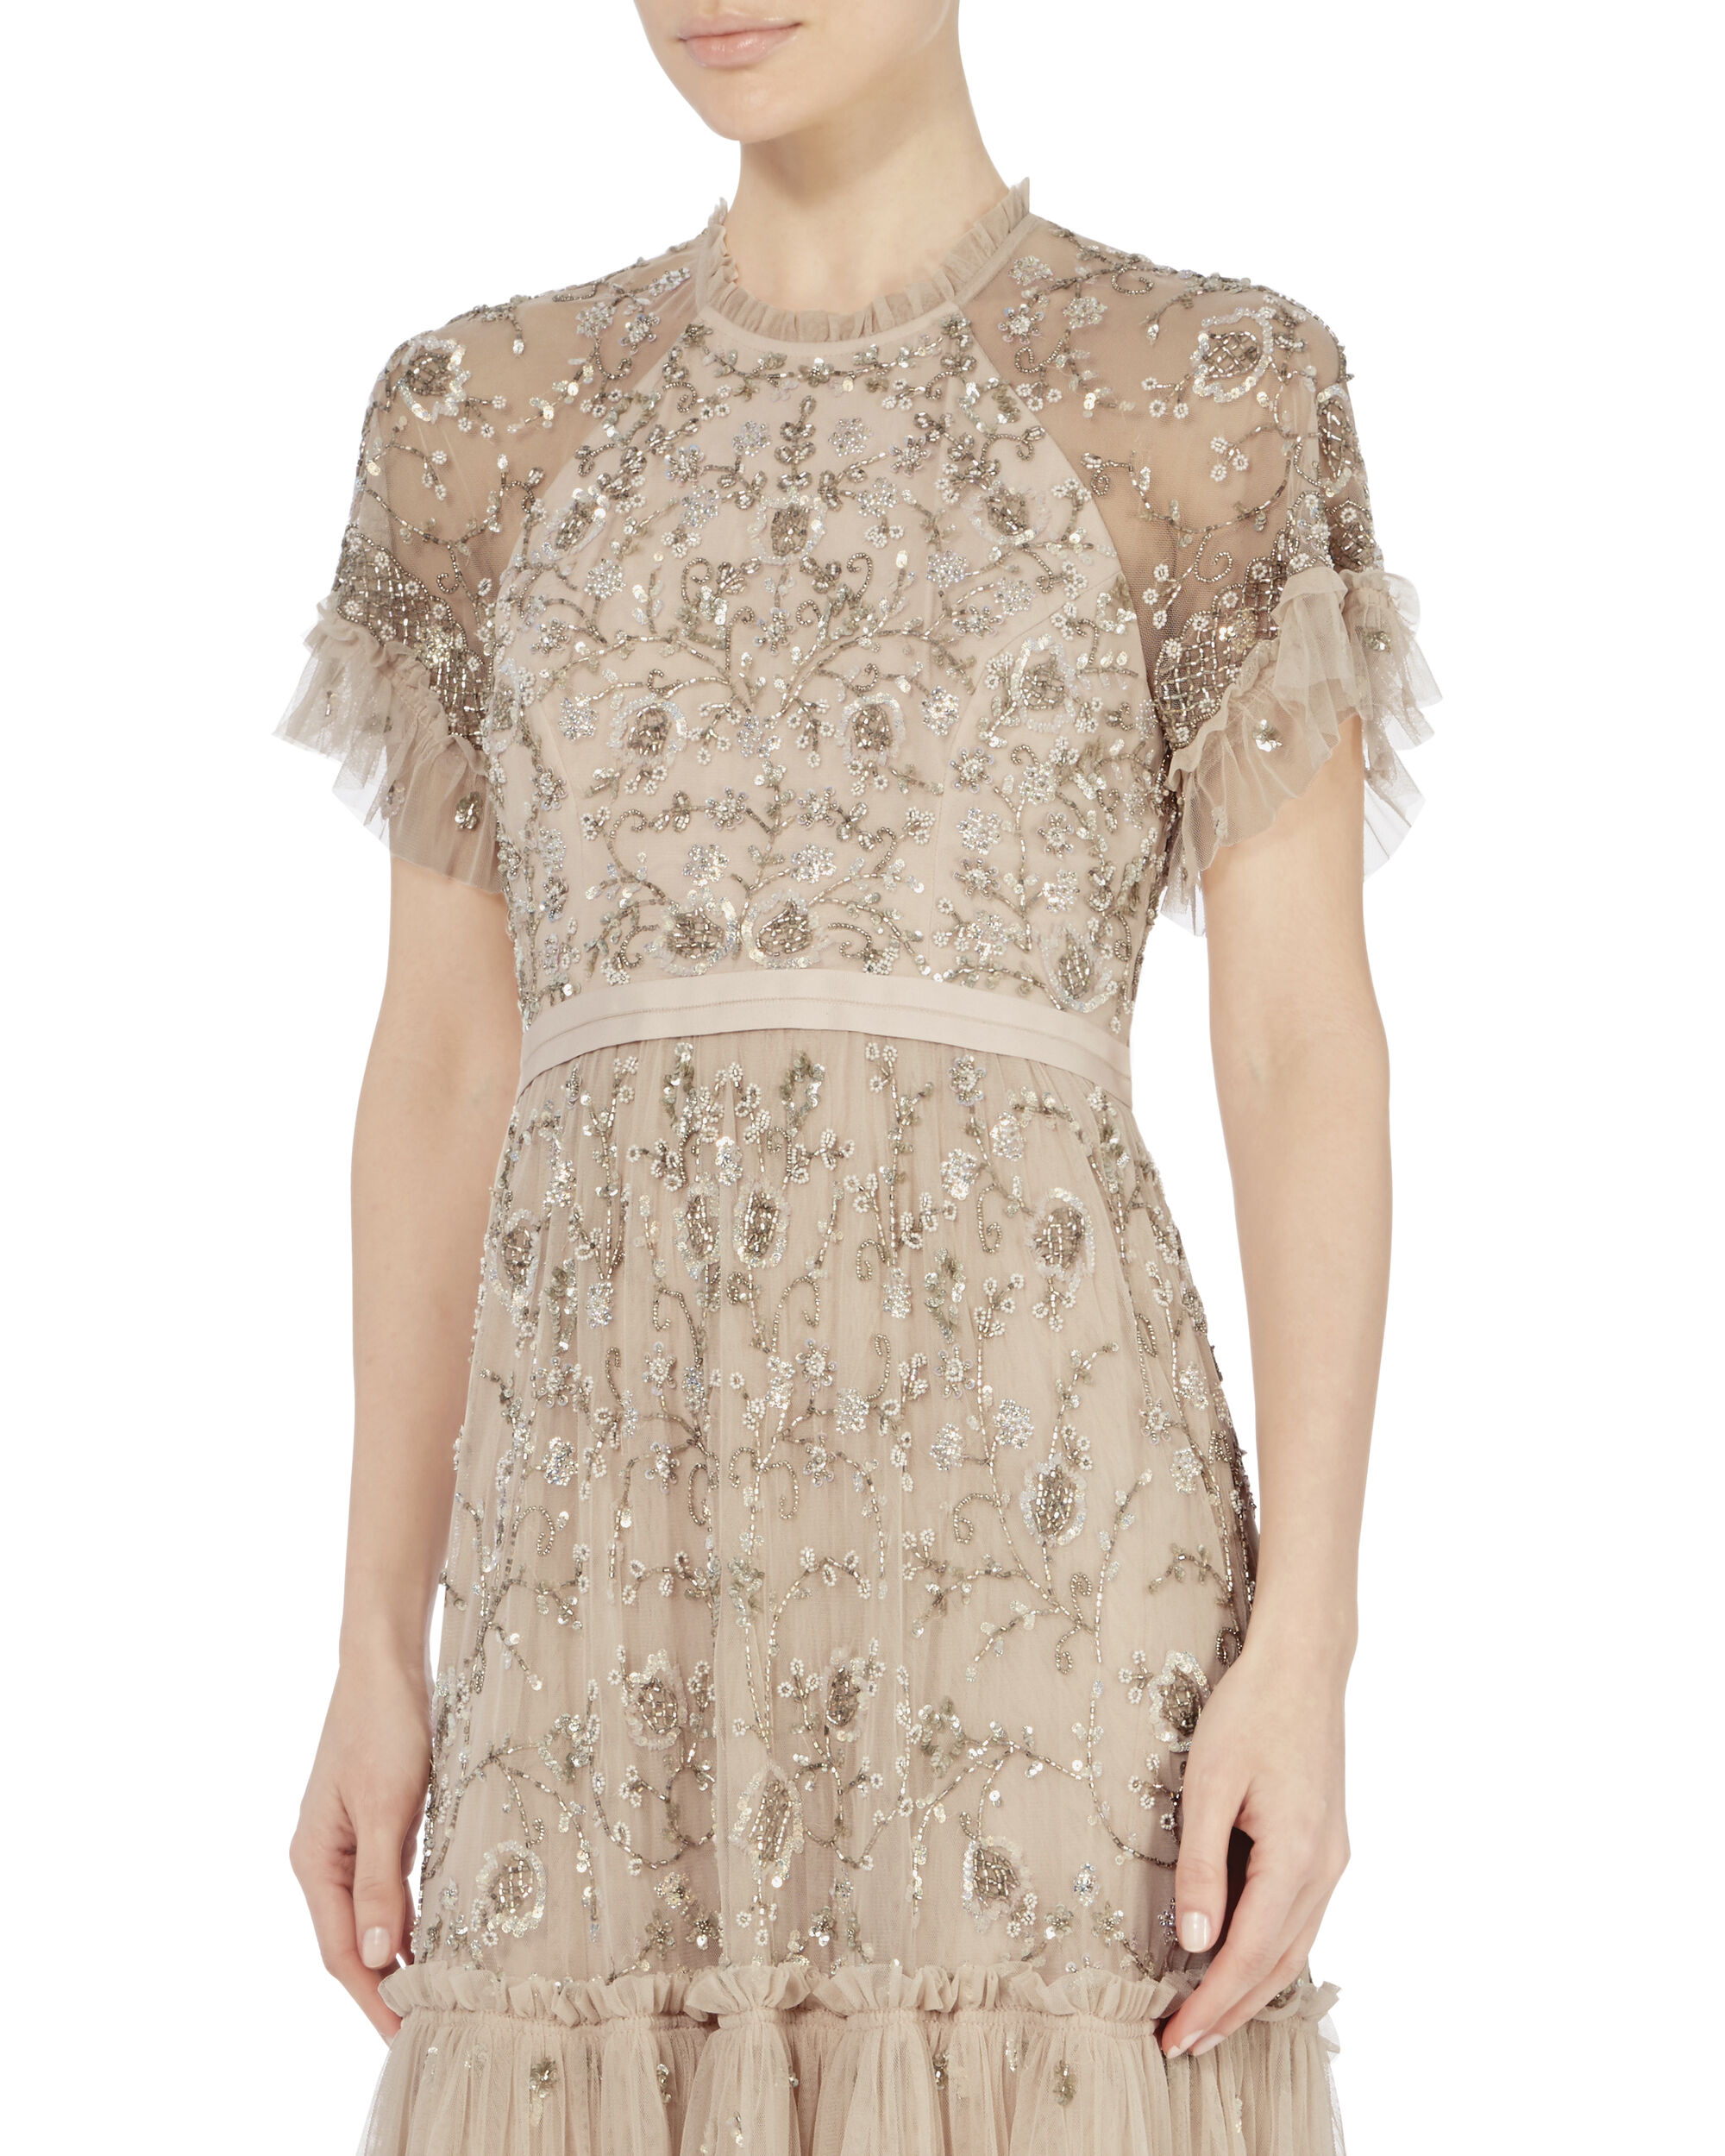 Constellation Lace Dress, PINK, hi-res